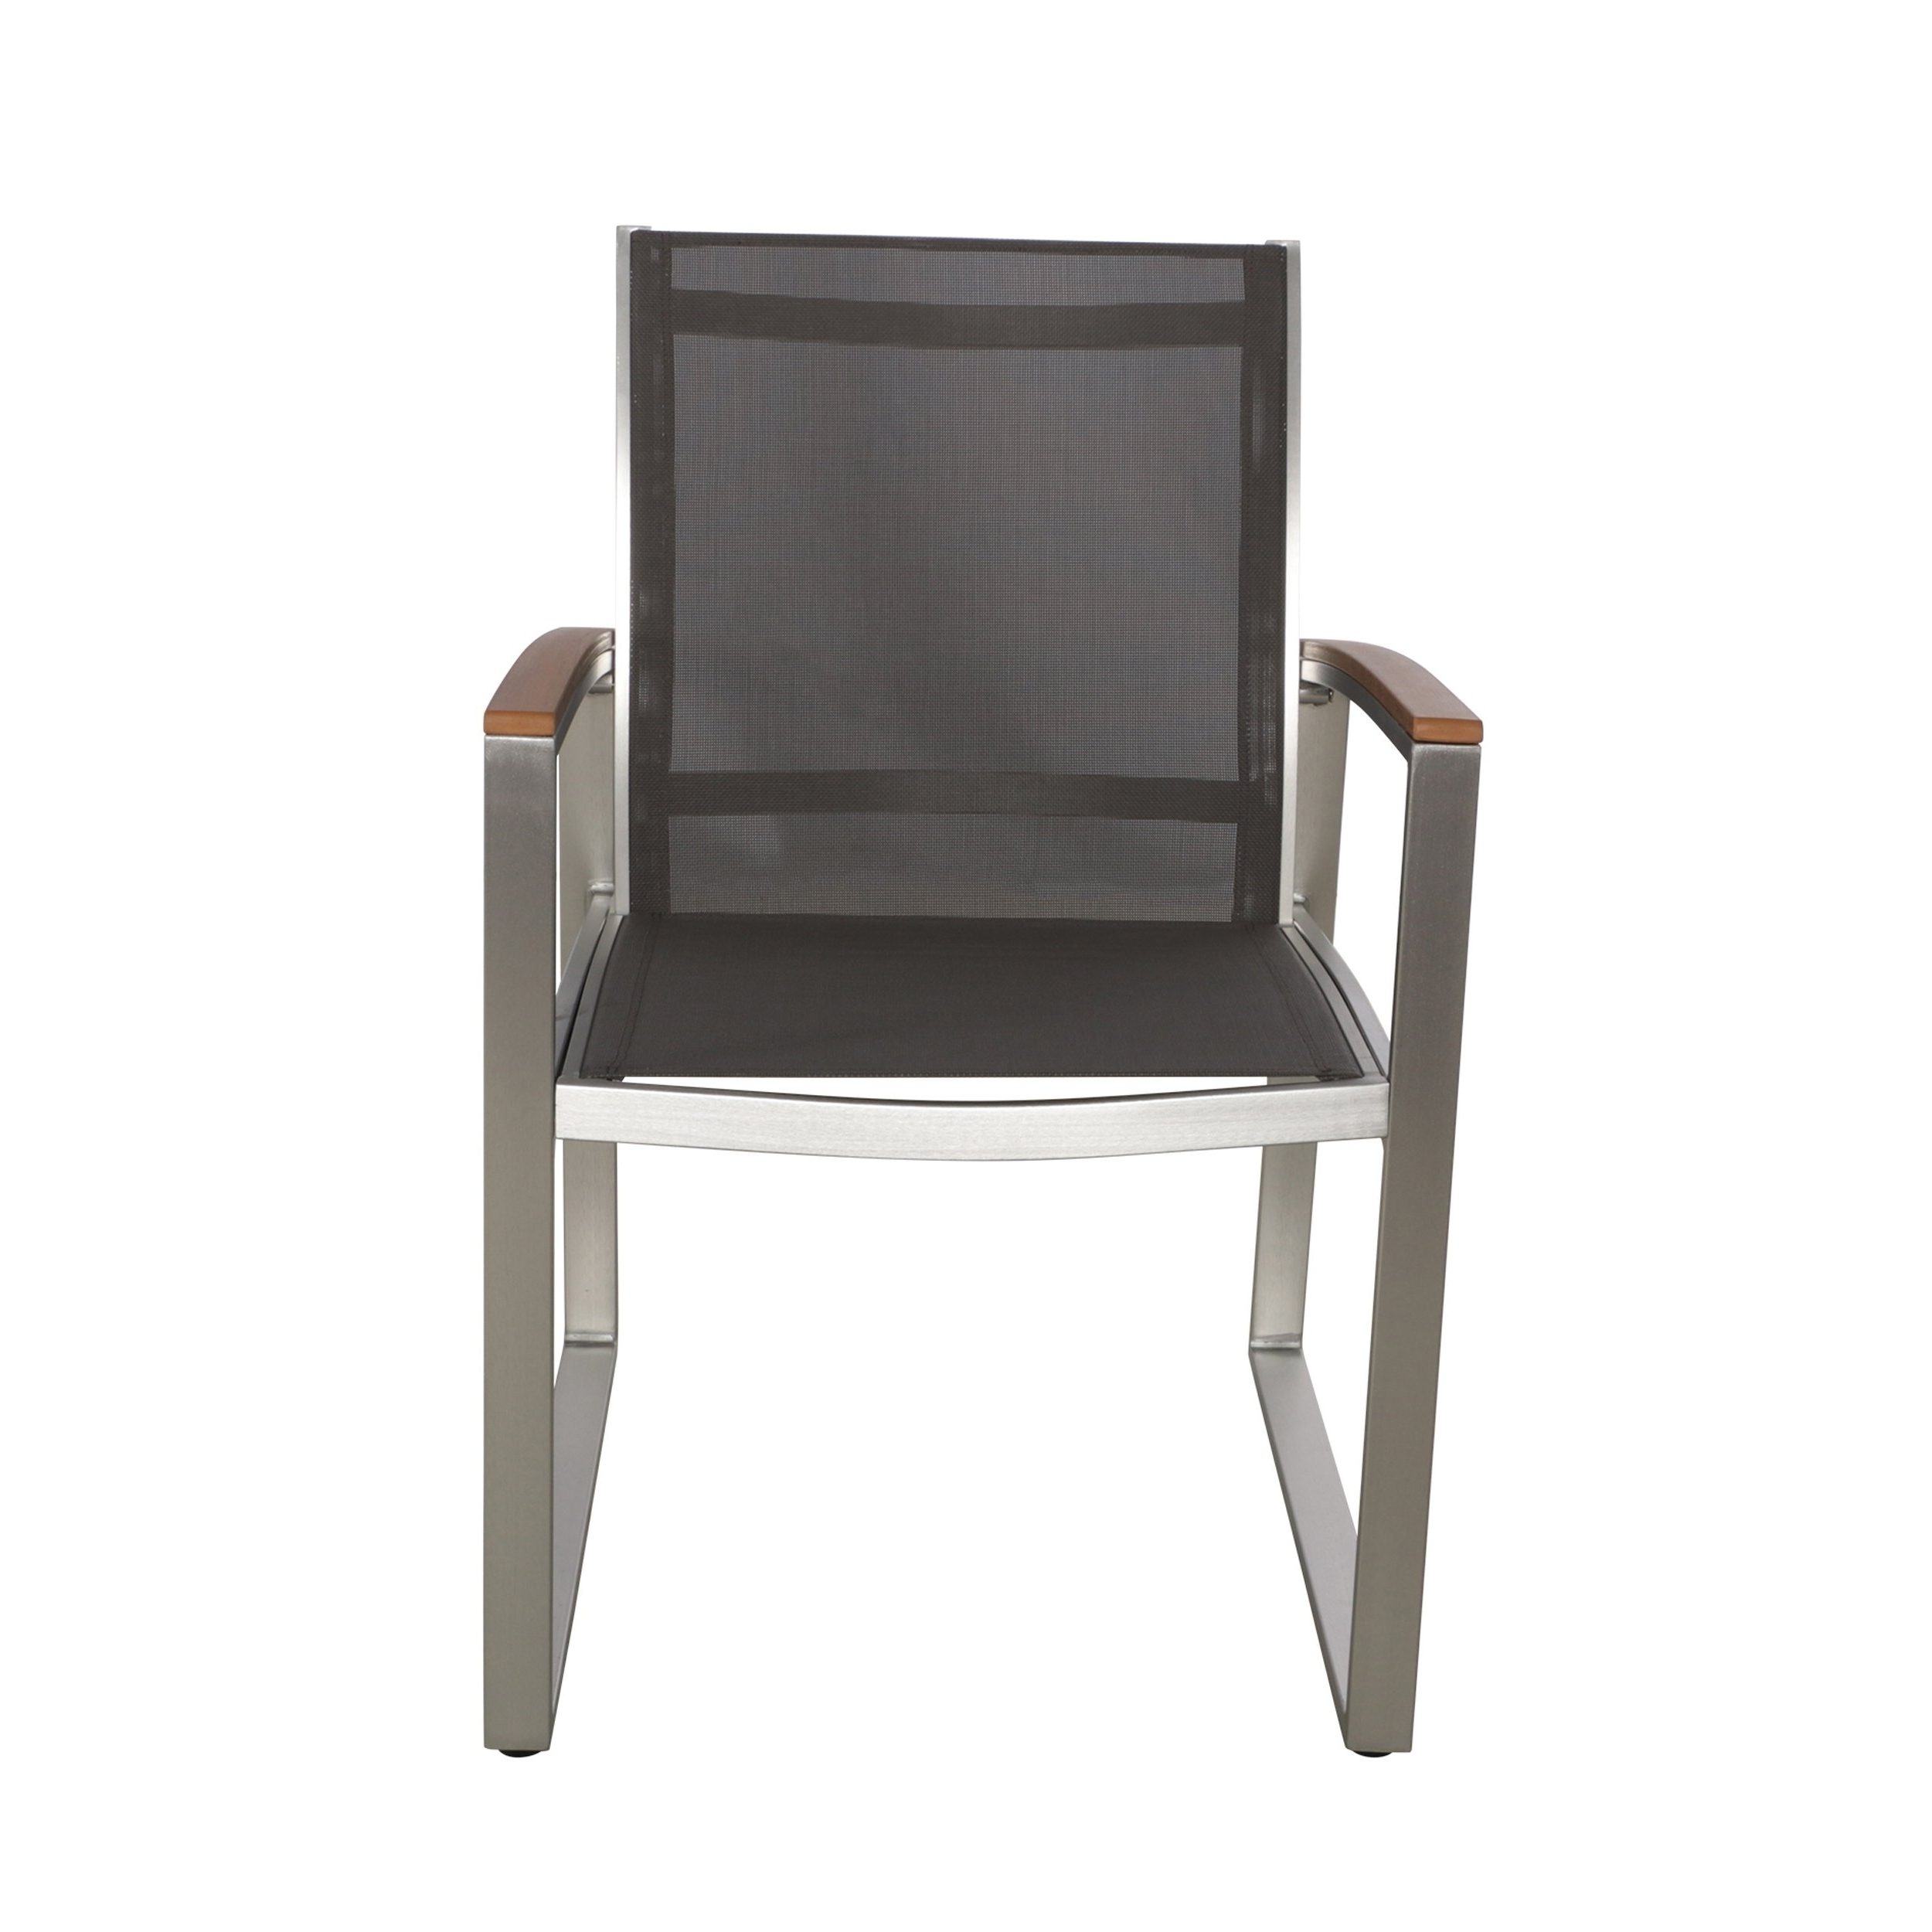 Glasgow Dining Sets Throughout Newest Shop Glasgow Outdoor Dining Chairs With Aluminum Frame (Set Of 2) (View 25 of 25)